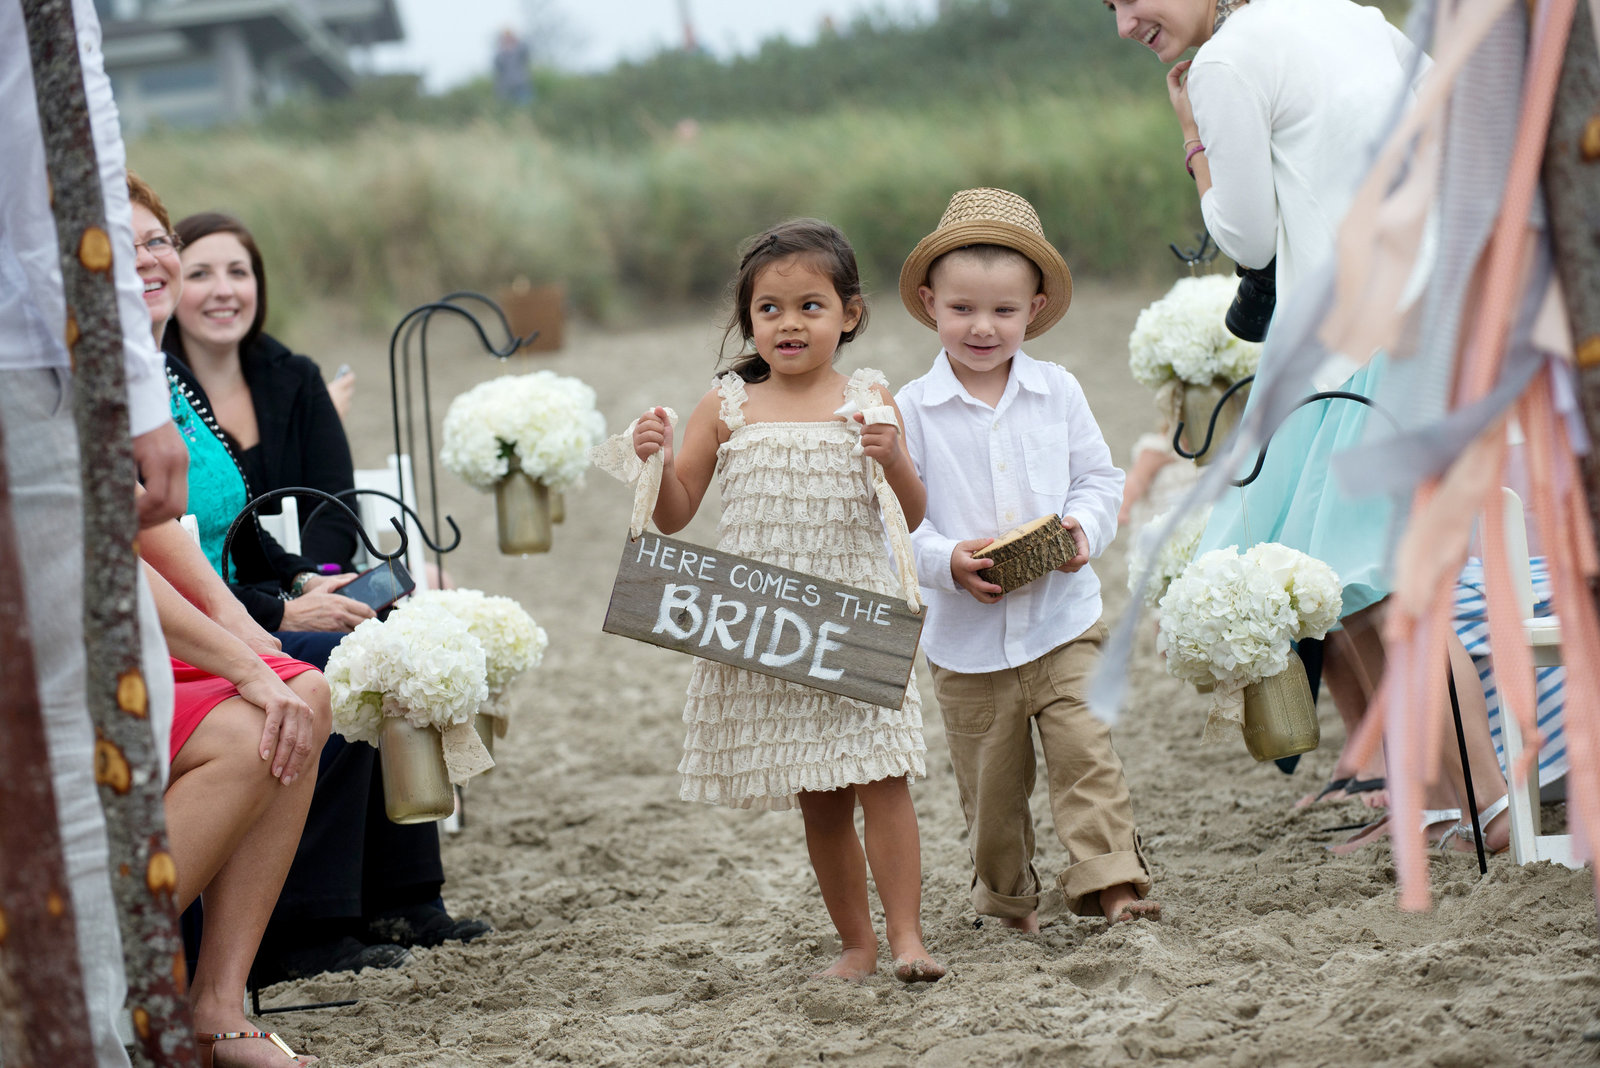 ring bearer walks sign down wedding aisle